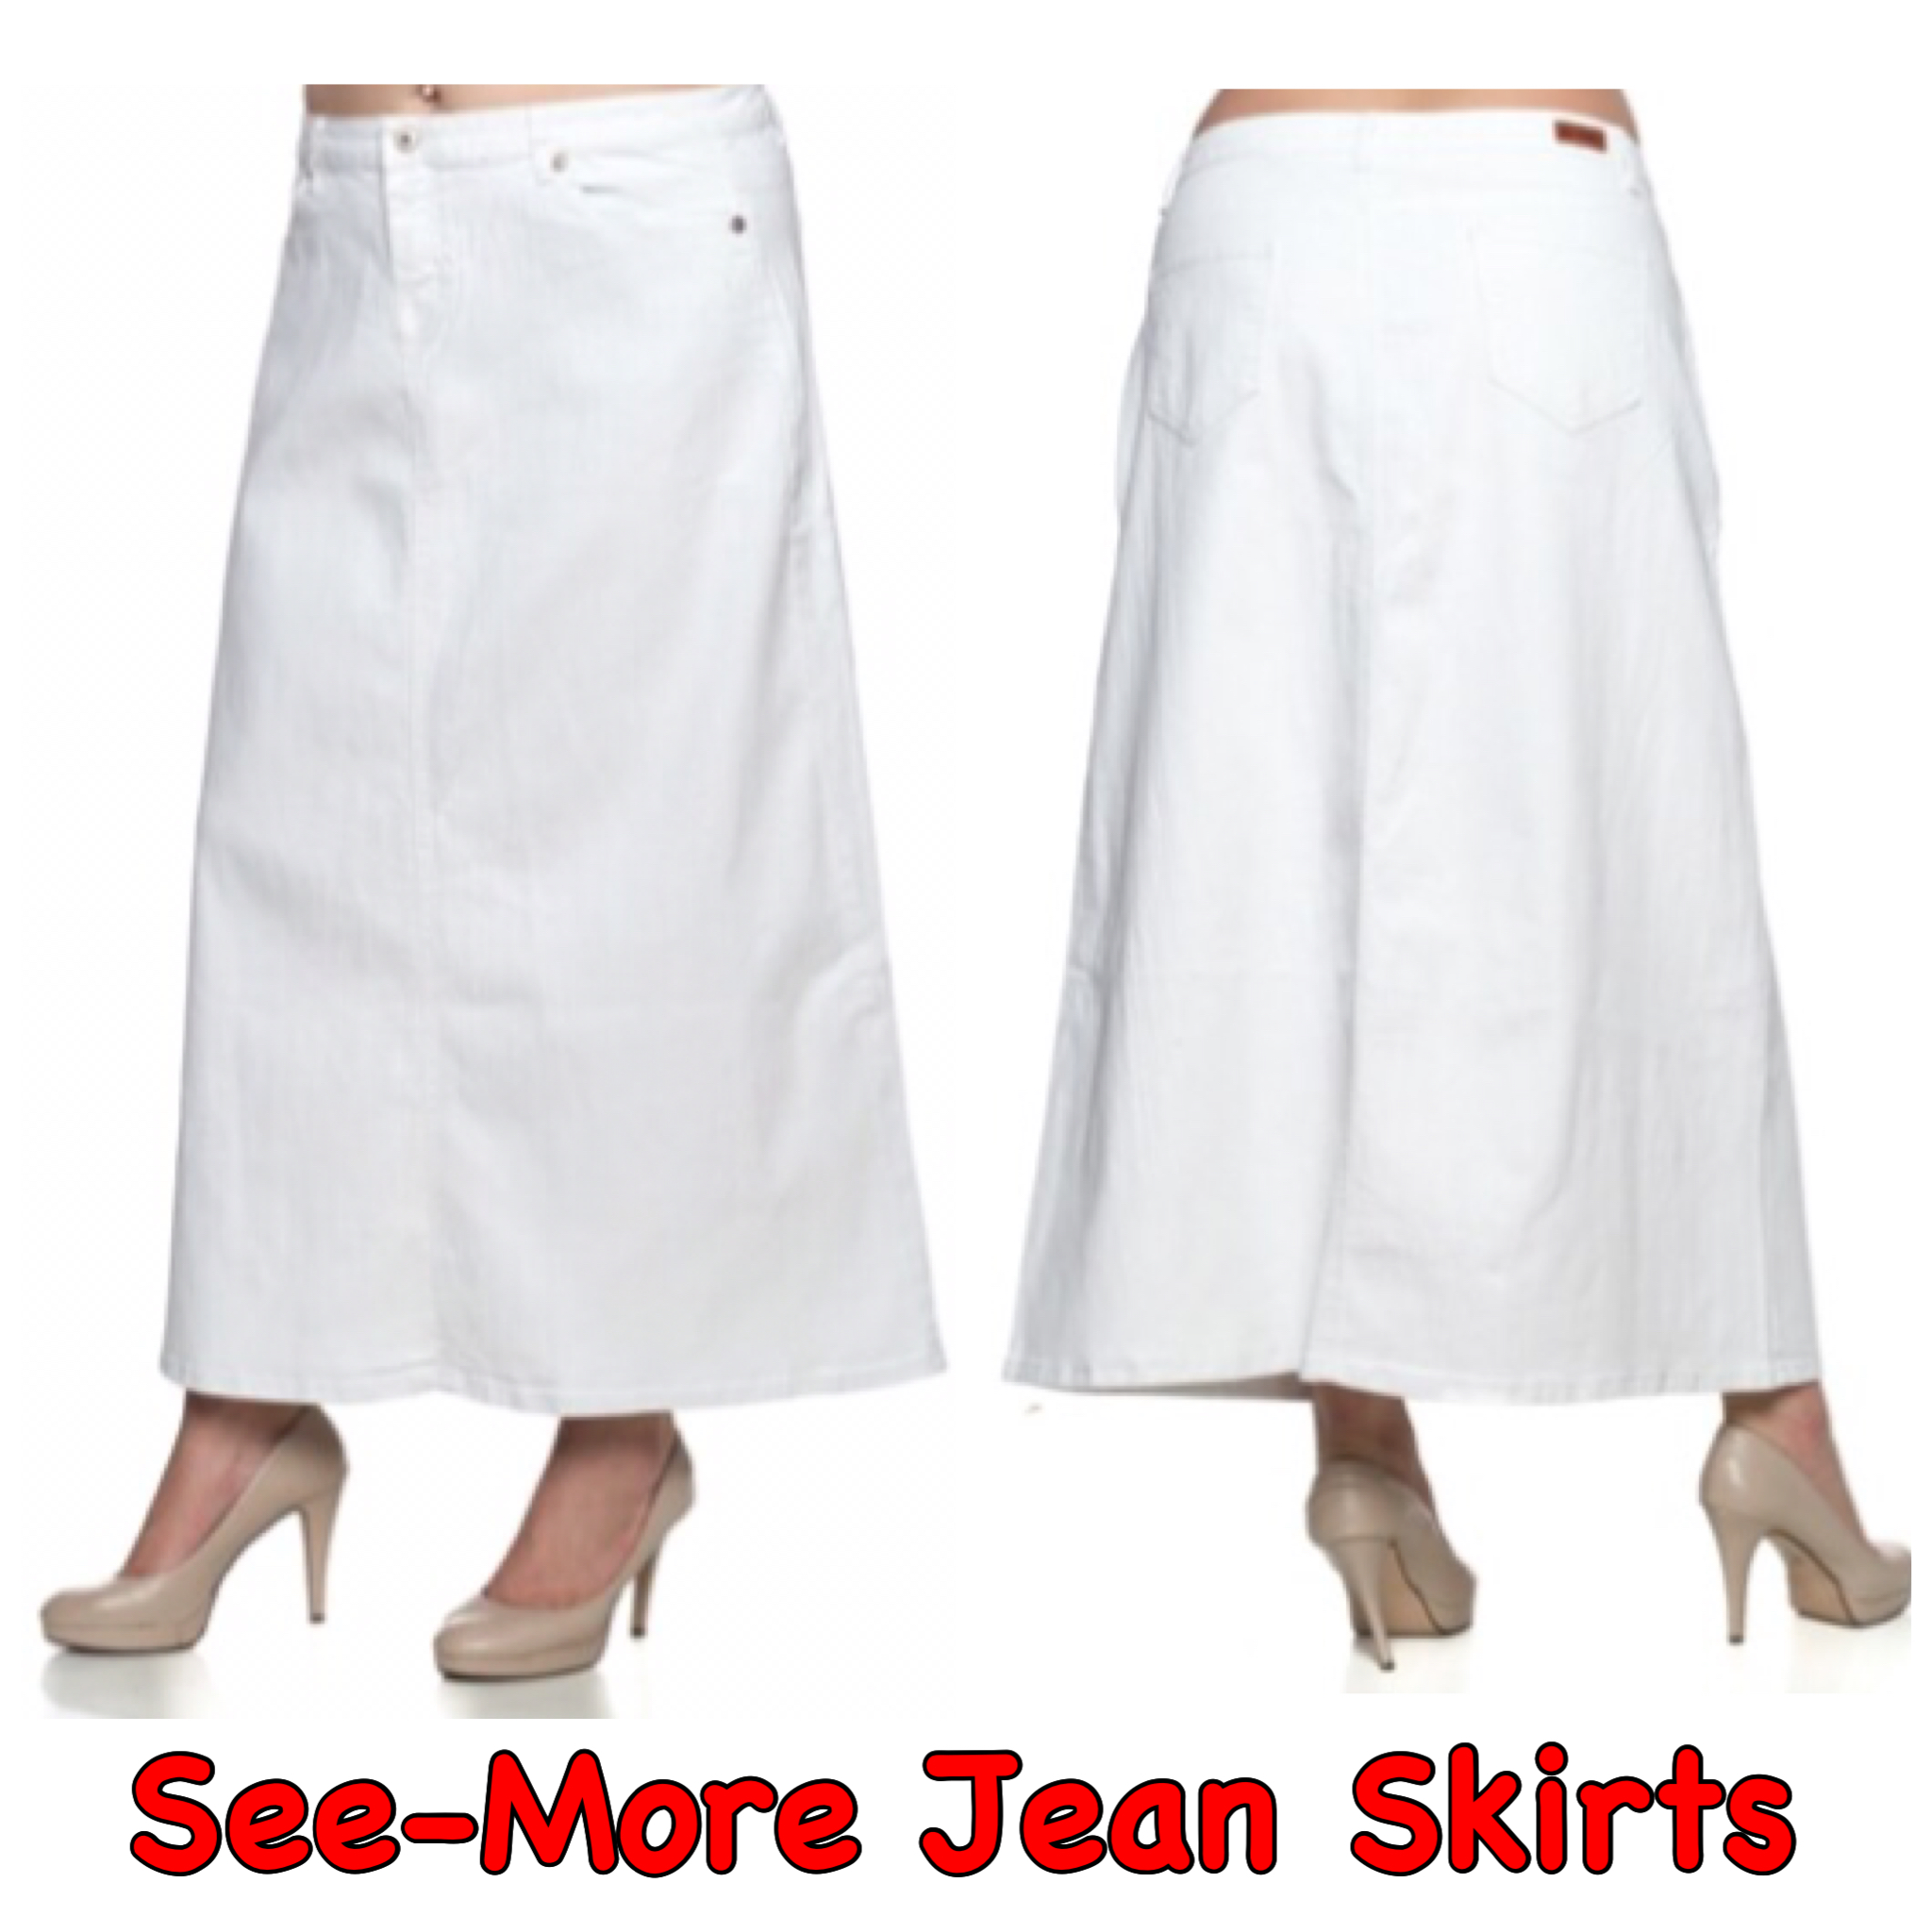 latest style save up to 80% variety design WHITE LONG DENIM SKIRT from See-More Jean Skirts